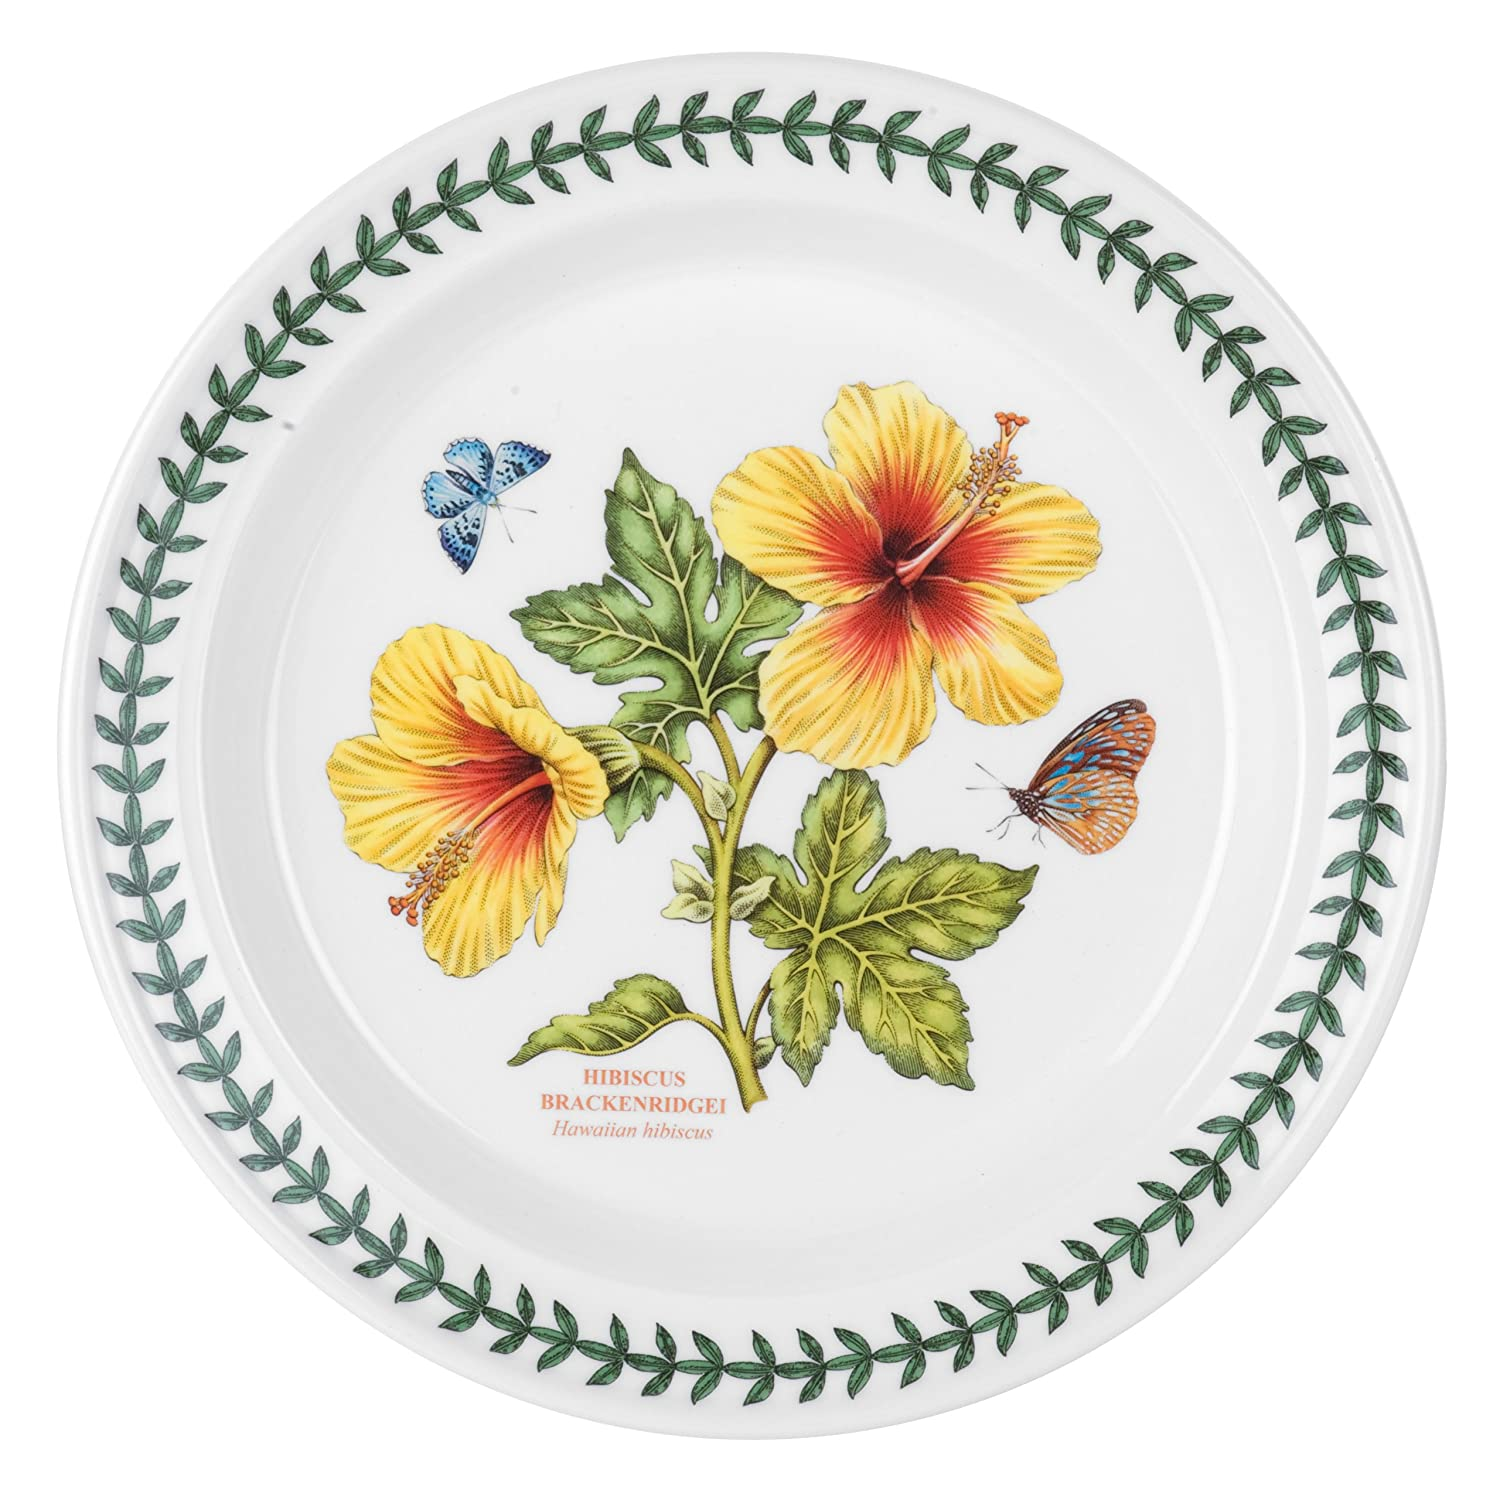 Delicieux Amazon.com | Portmeirion Exotic Botanic Garden Dinner Plate With Hibiscus  Motif, Set Of 6: Dinner Plates